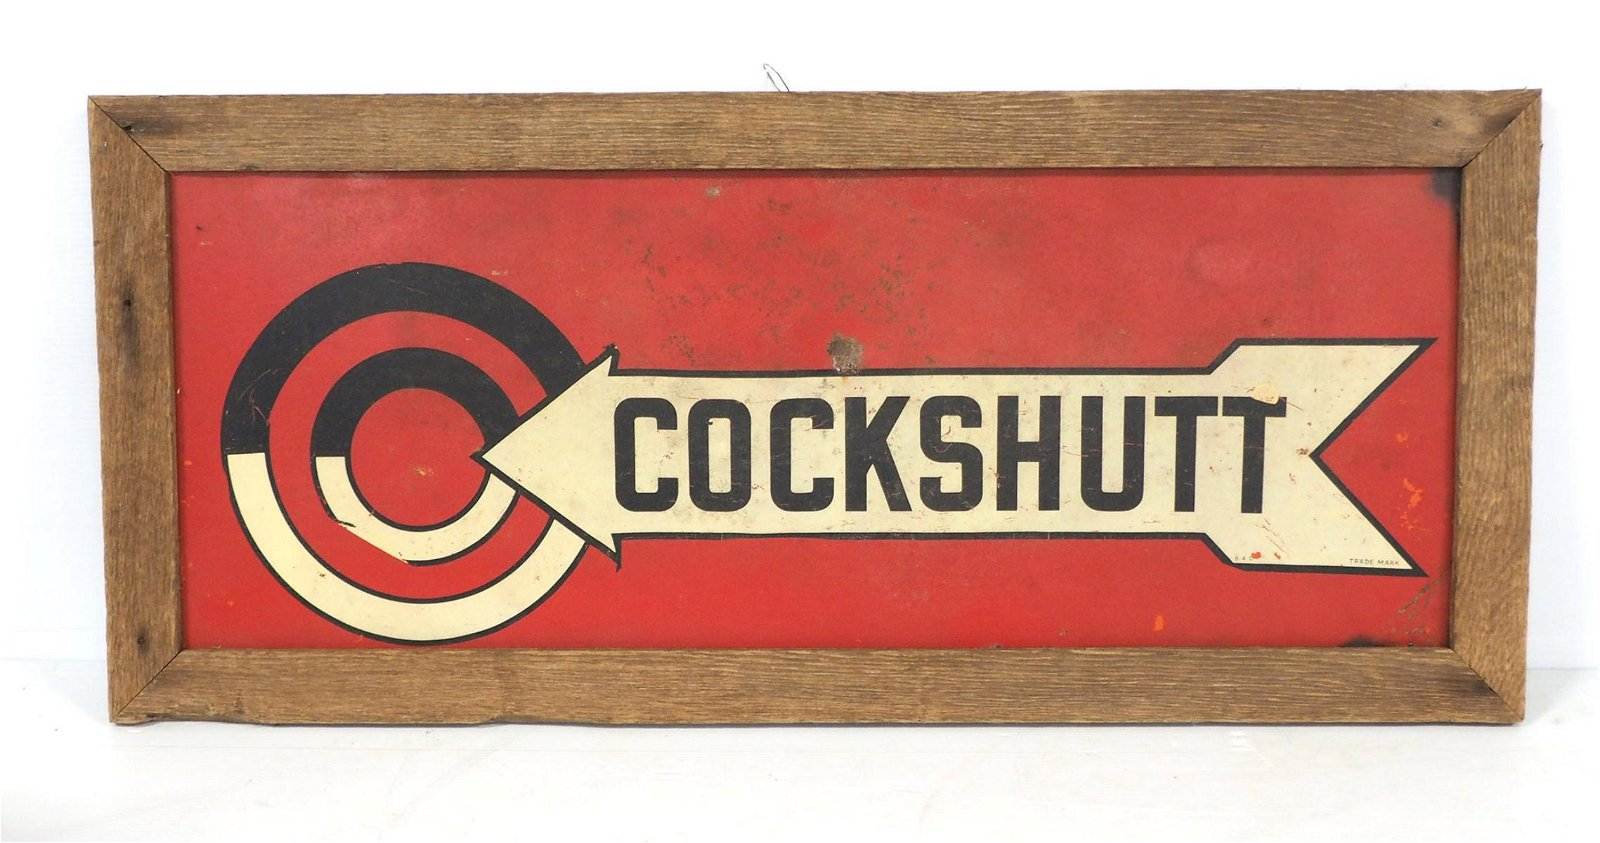 Cockshutt sign